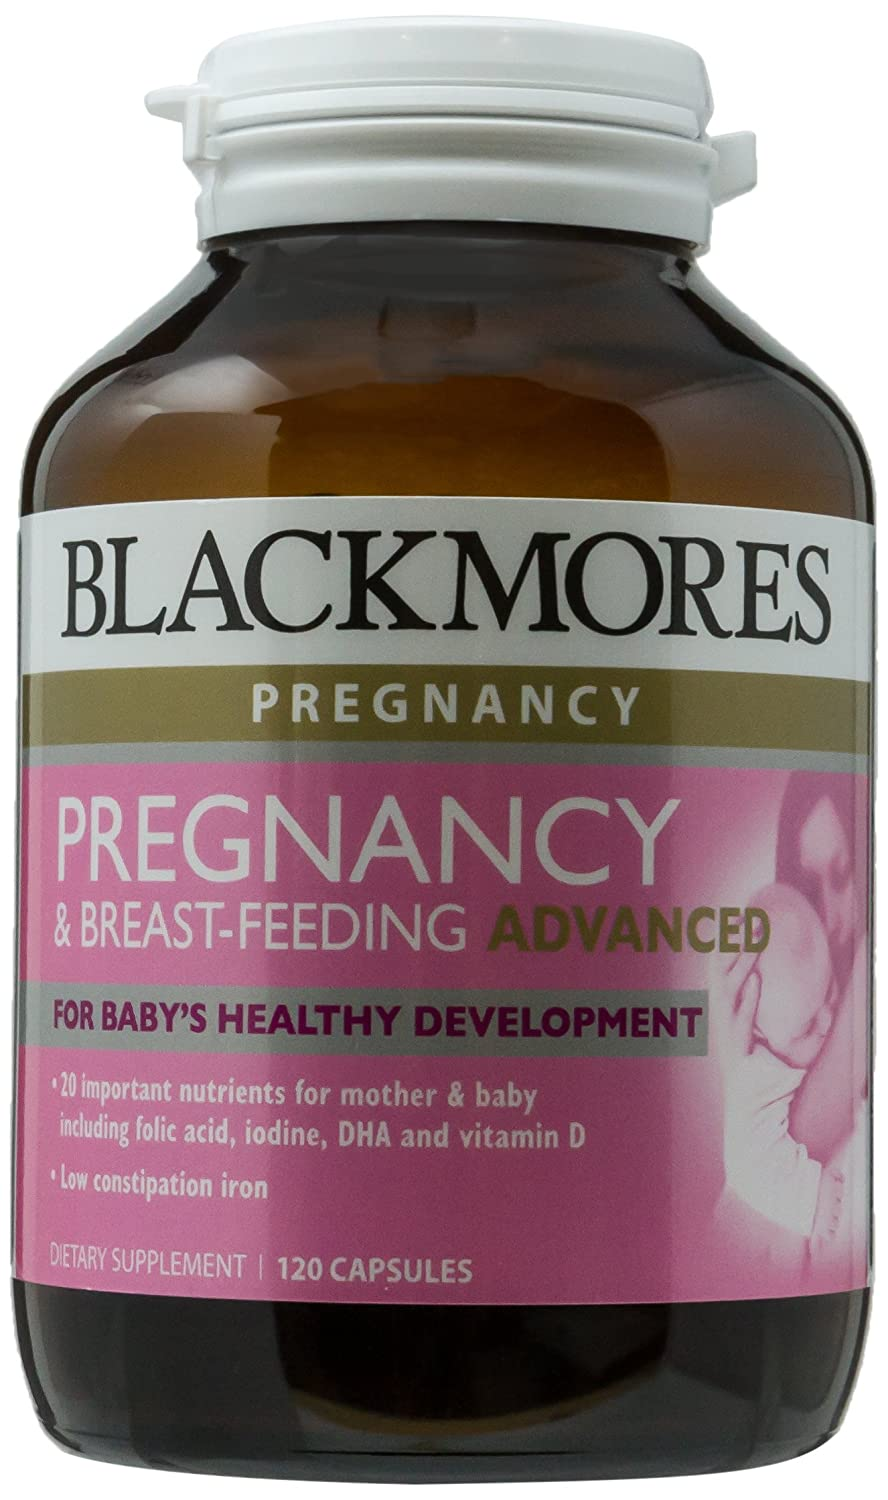 Blackmores Pregnancy Breastfeeding Advanced 120caps Breast Feeding Gold Health Personal Care